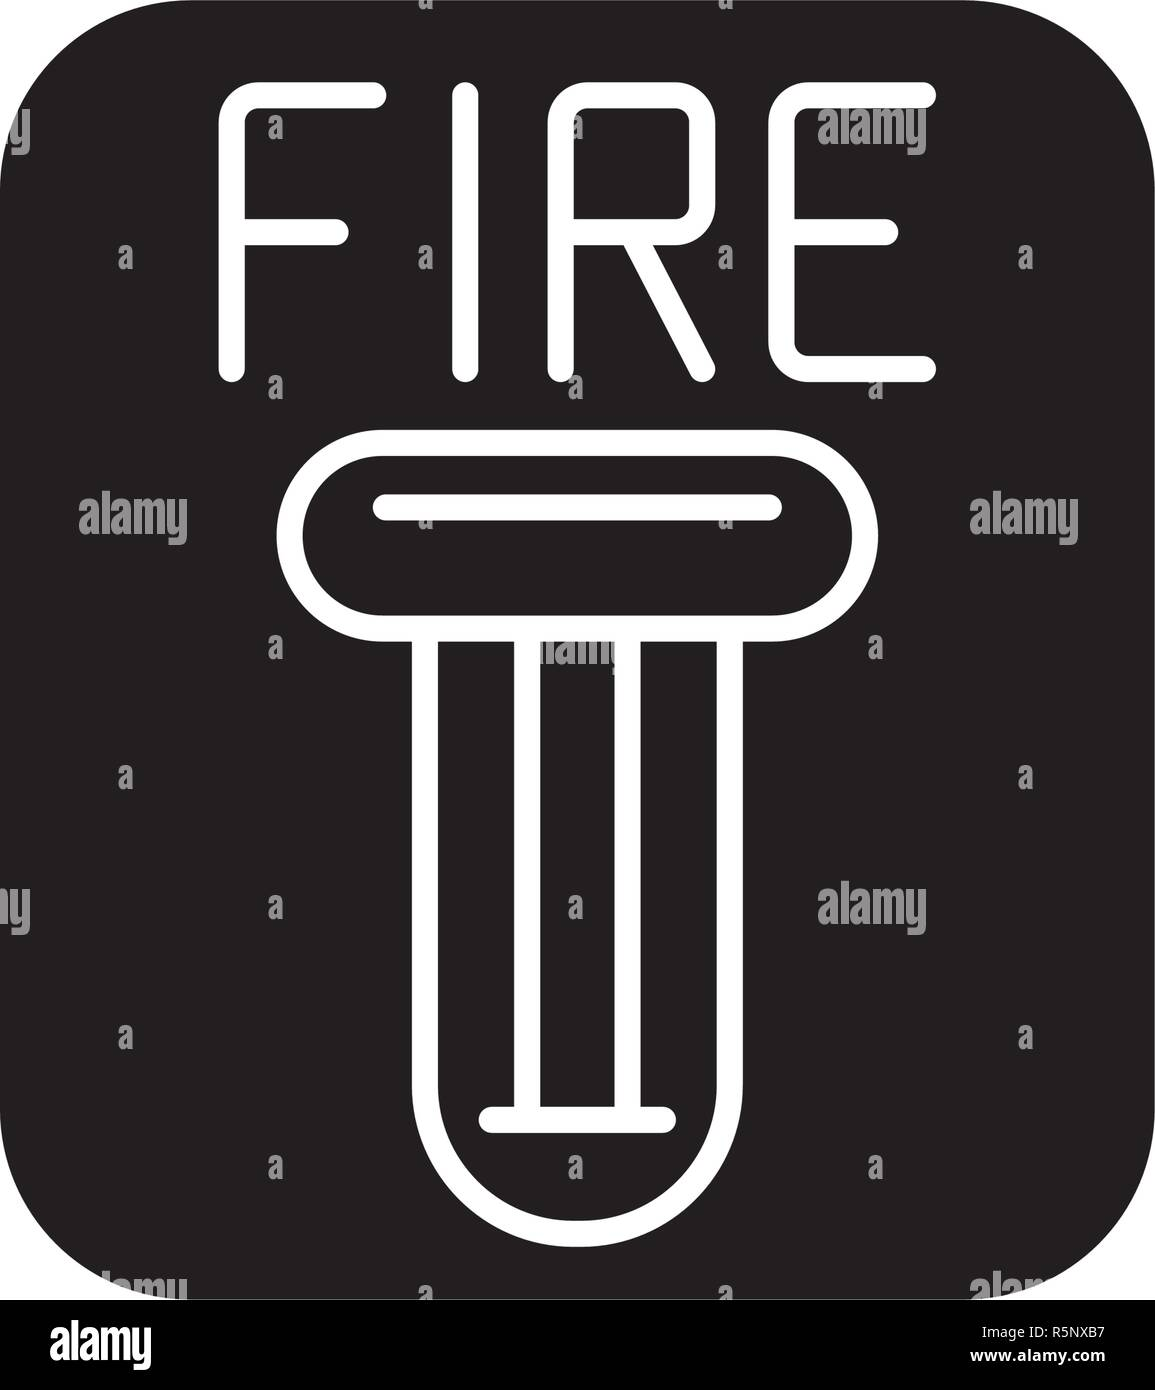 Fire safety black icon, vector sign on isolated background. Fire safety concept symbol, illustration  - Stock Image